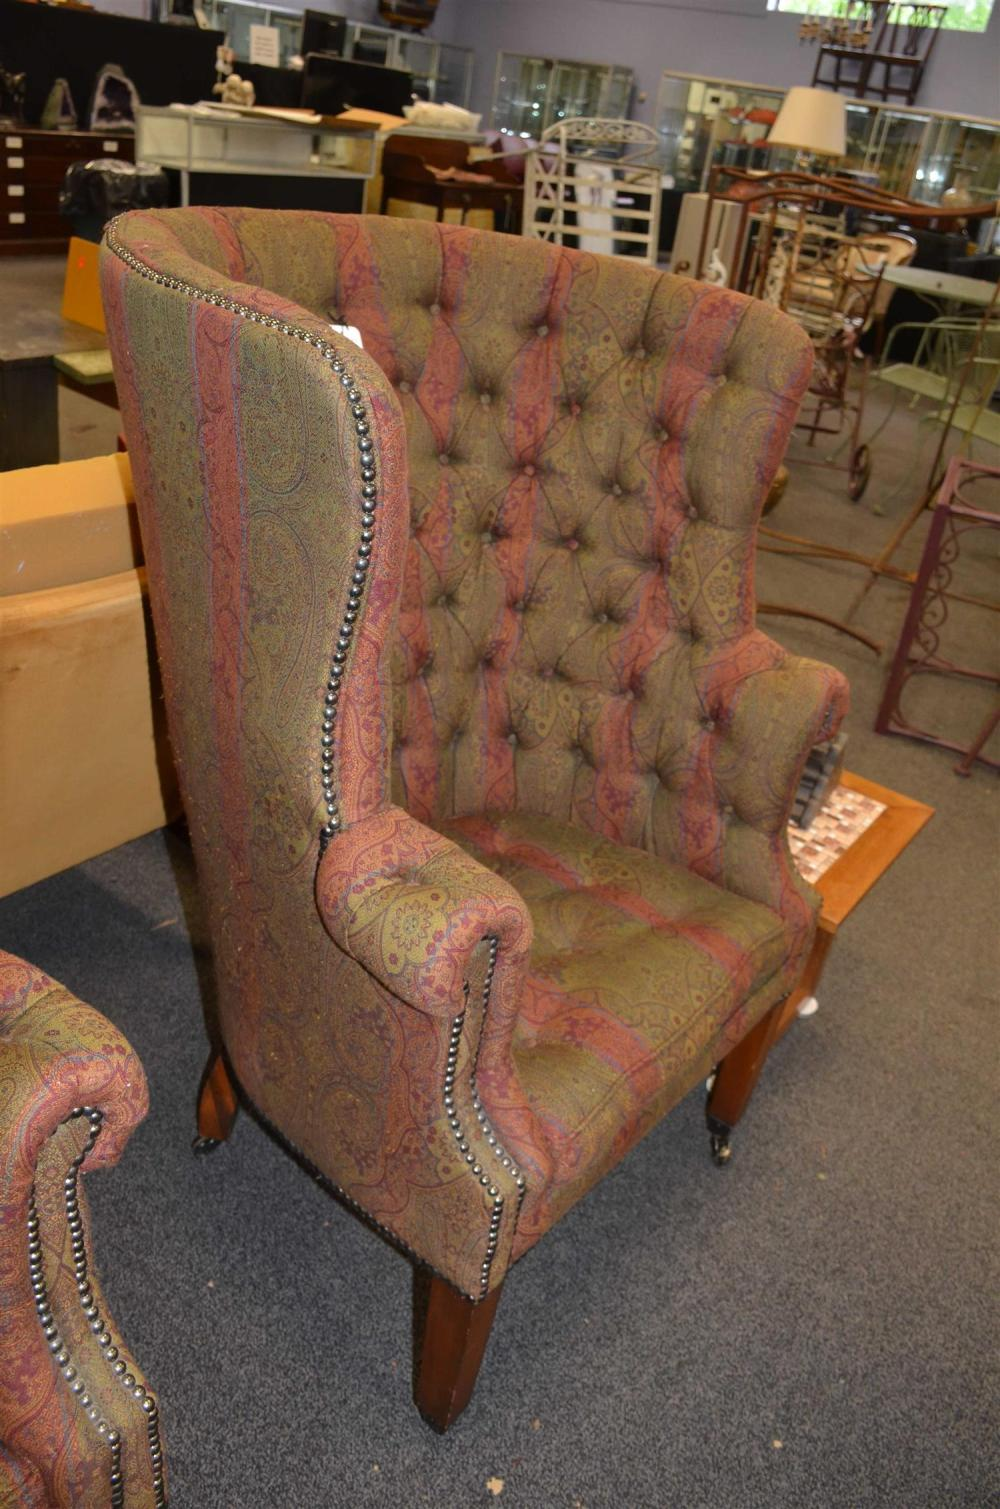 Picture of: Sold Price Pair Ralph Lauren Tufted Upholstered Barrel Back Wing Chairs 45 H Seat Height 20 H October 2 0119 10 30 Am Edt